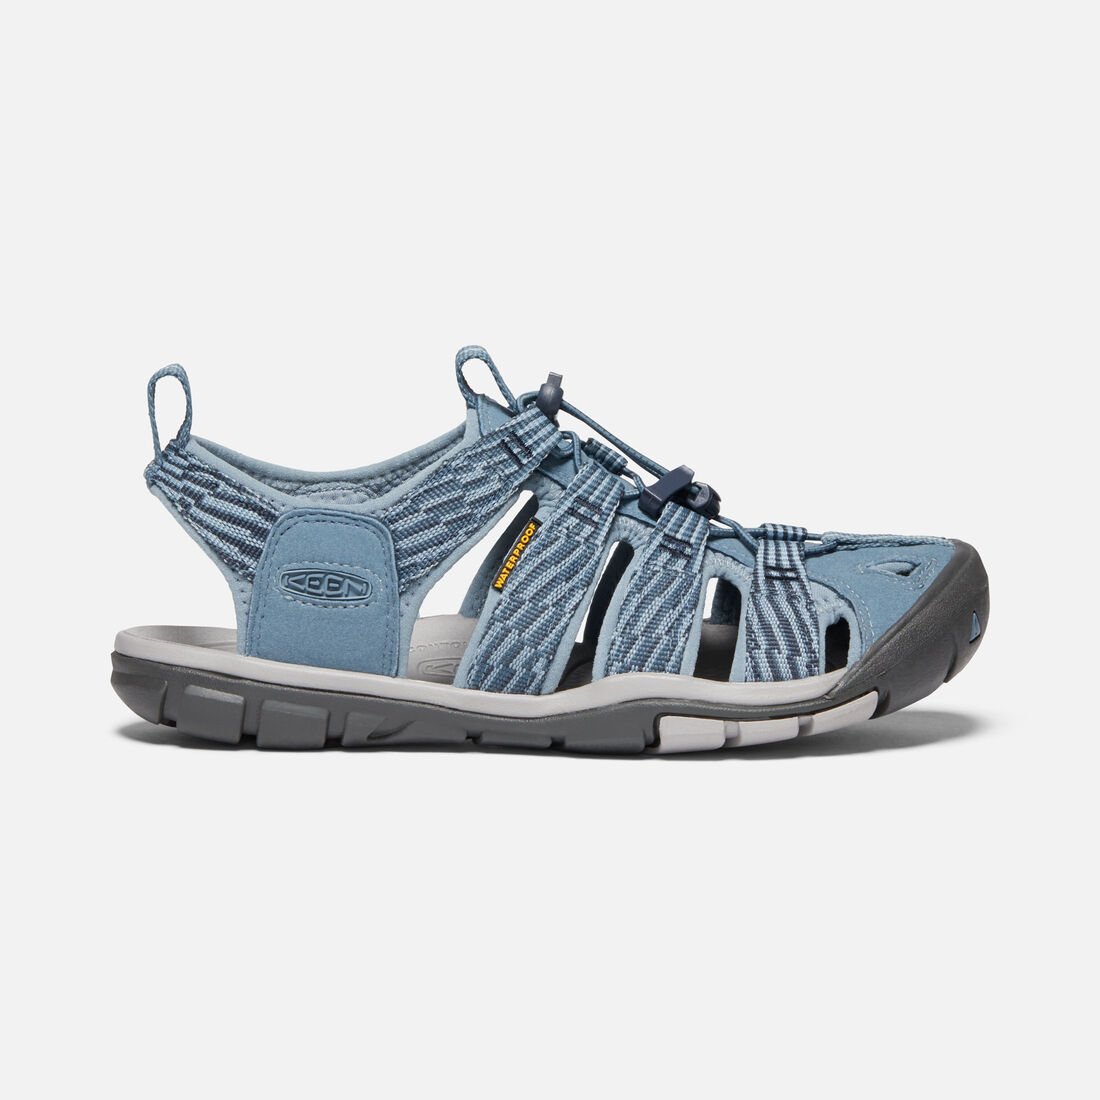 Women's Clearwater CNX in BLUE MIRAGE/CITADEL - large view.